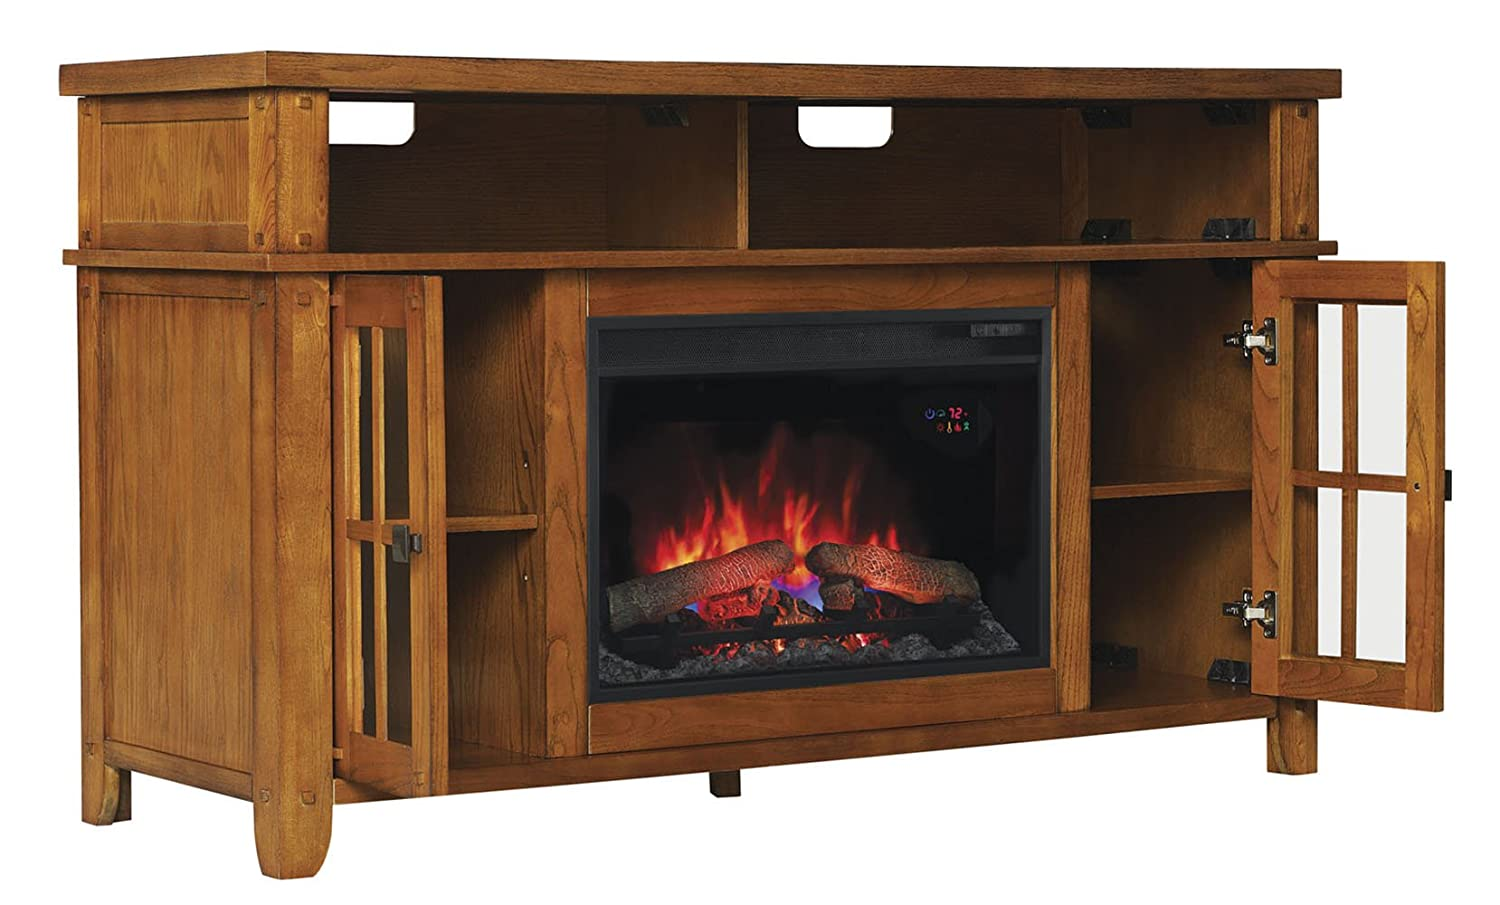 "Amazon.com: ClassicFlame  Dakota TV Stand for TVs up to 65"": Home & Kitchen"